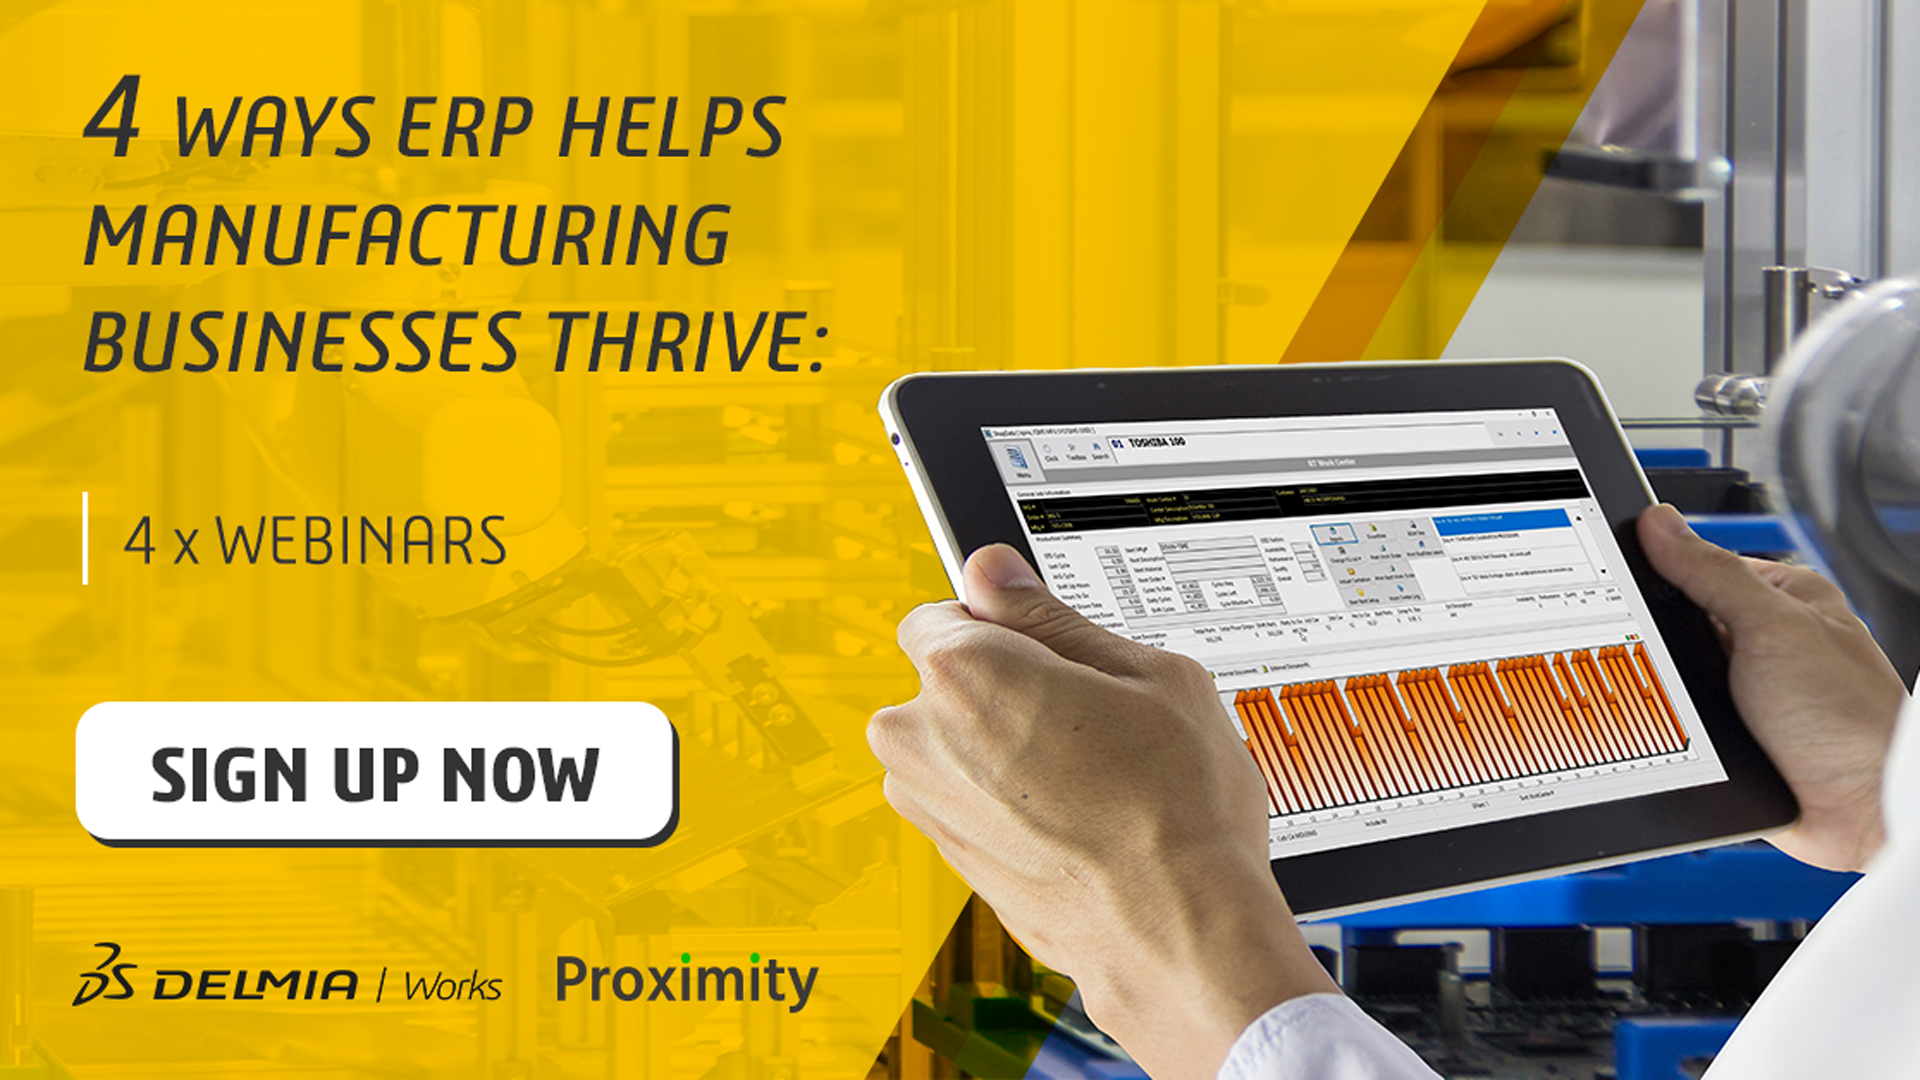 4 Ways ERP Software Helps Manufacturing Businesses Thrive